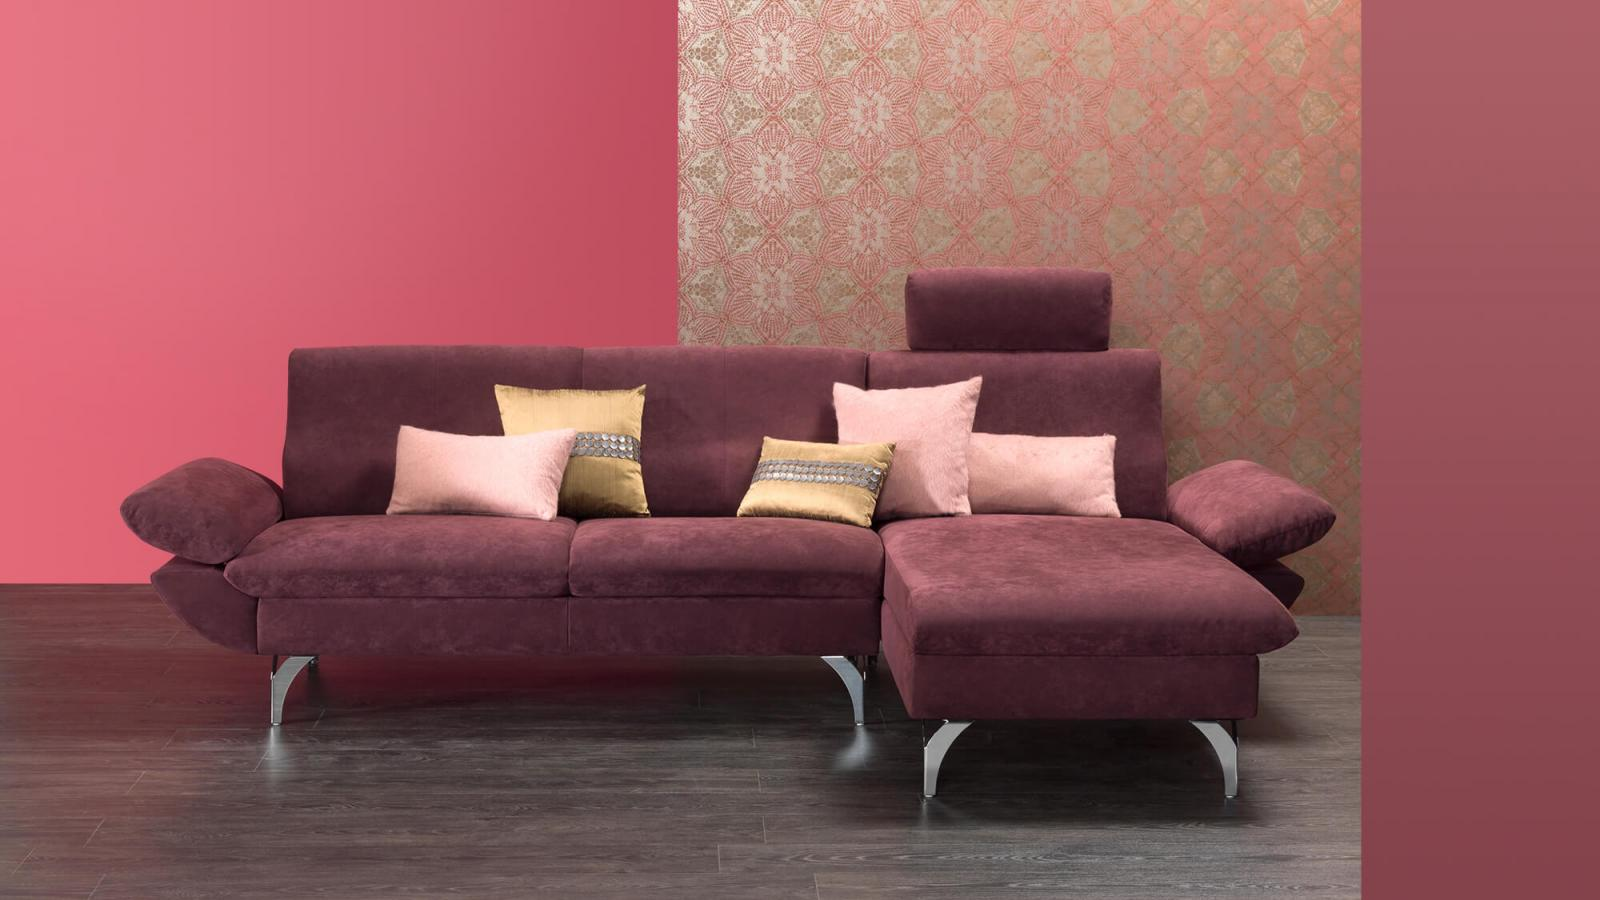 horst collection schweiz switzerland suisse malans sofa canape design moebel furniture meubles rot red rouge alcantara